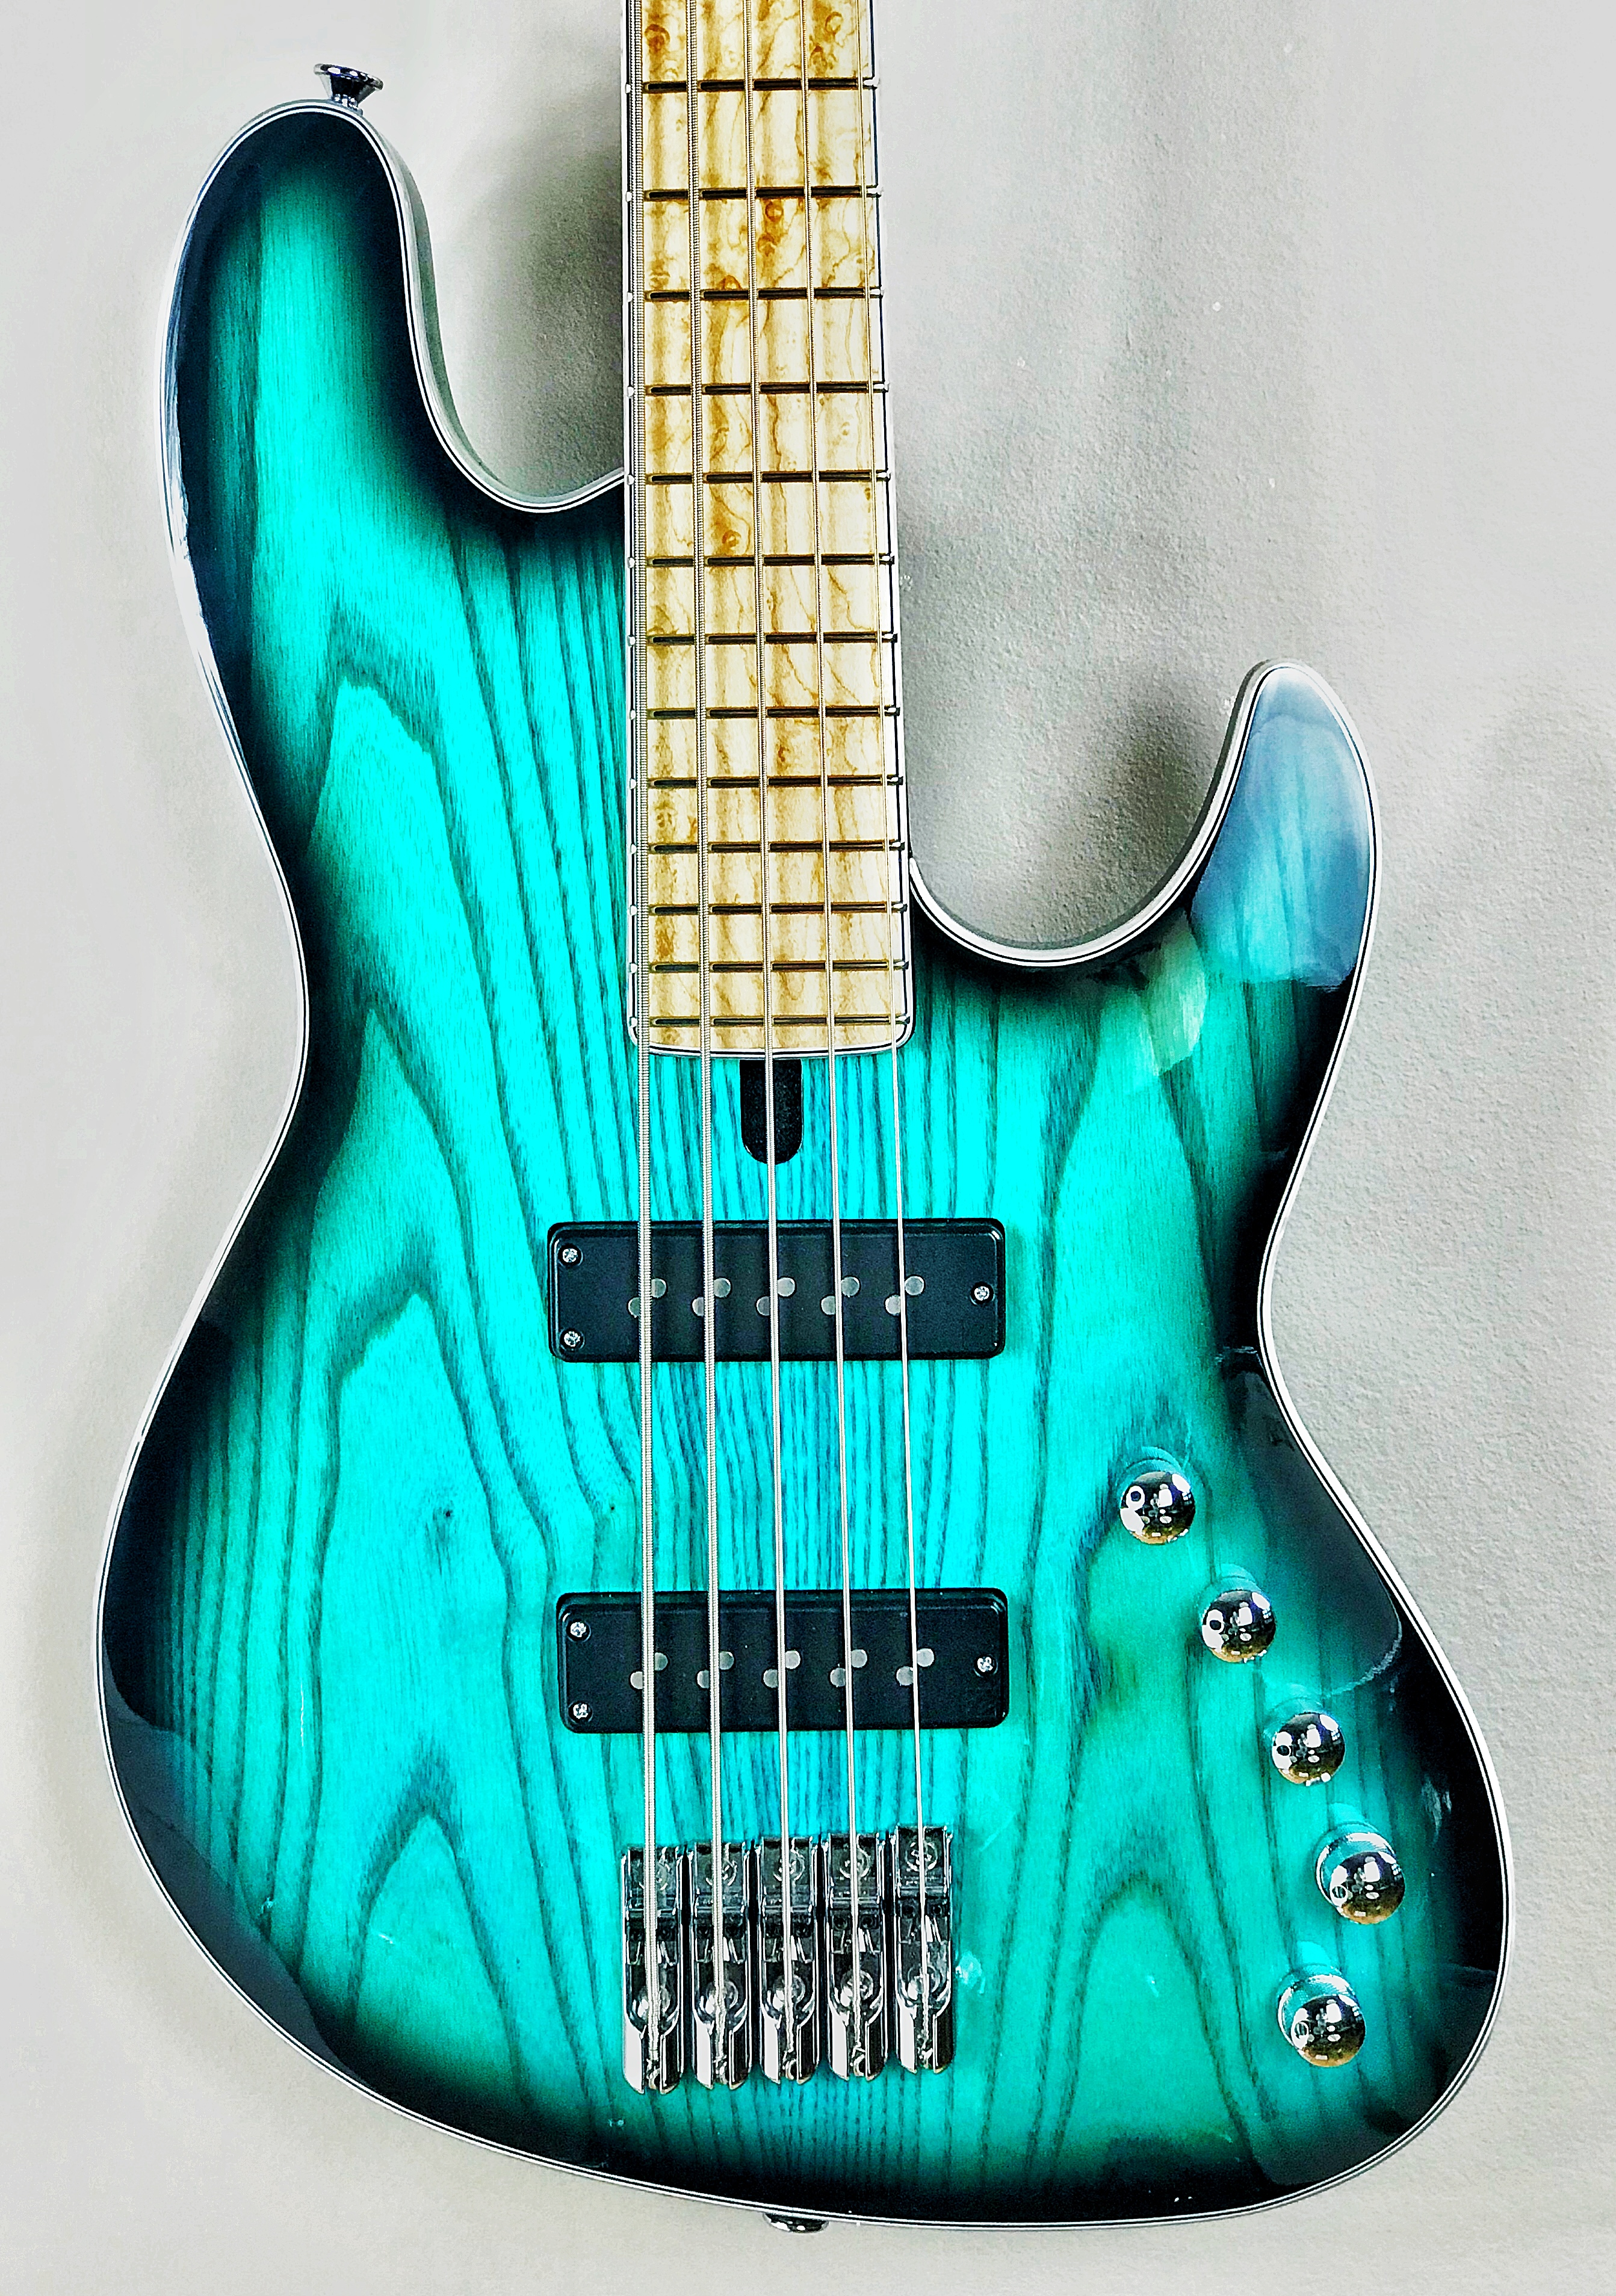 new maruszczyk elwood absolution 5 string bass nordstrand pickups noll 3 band preamp. Black Bedroom Furniture Sets. Home Design Ideas